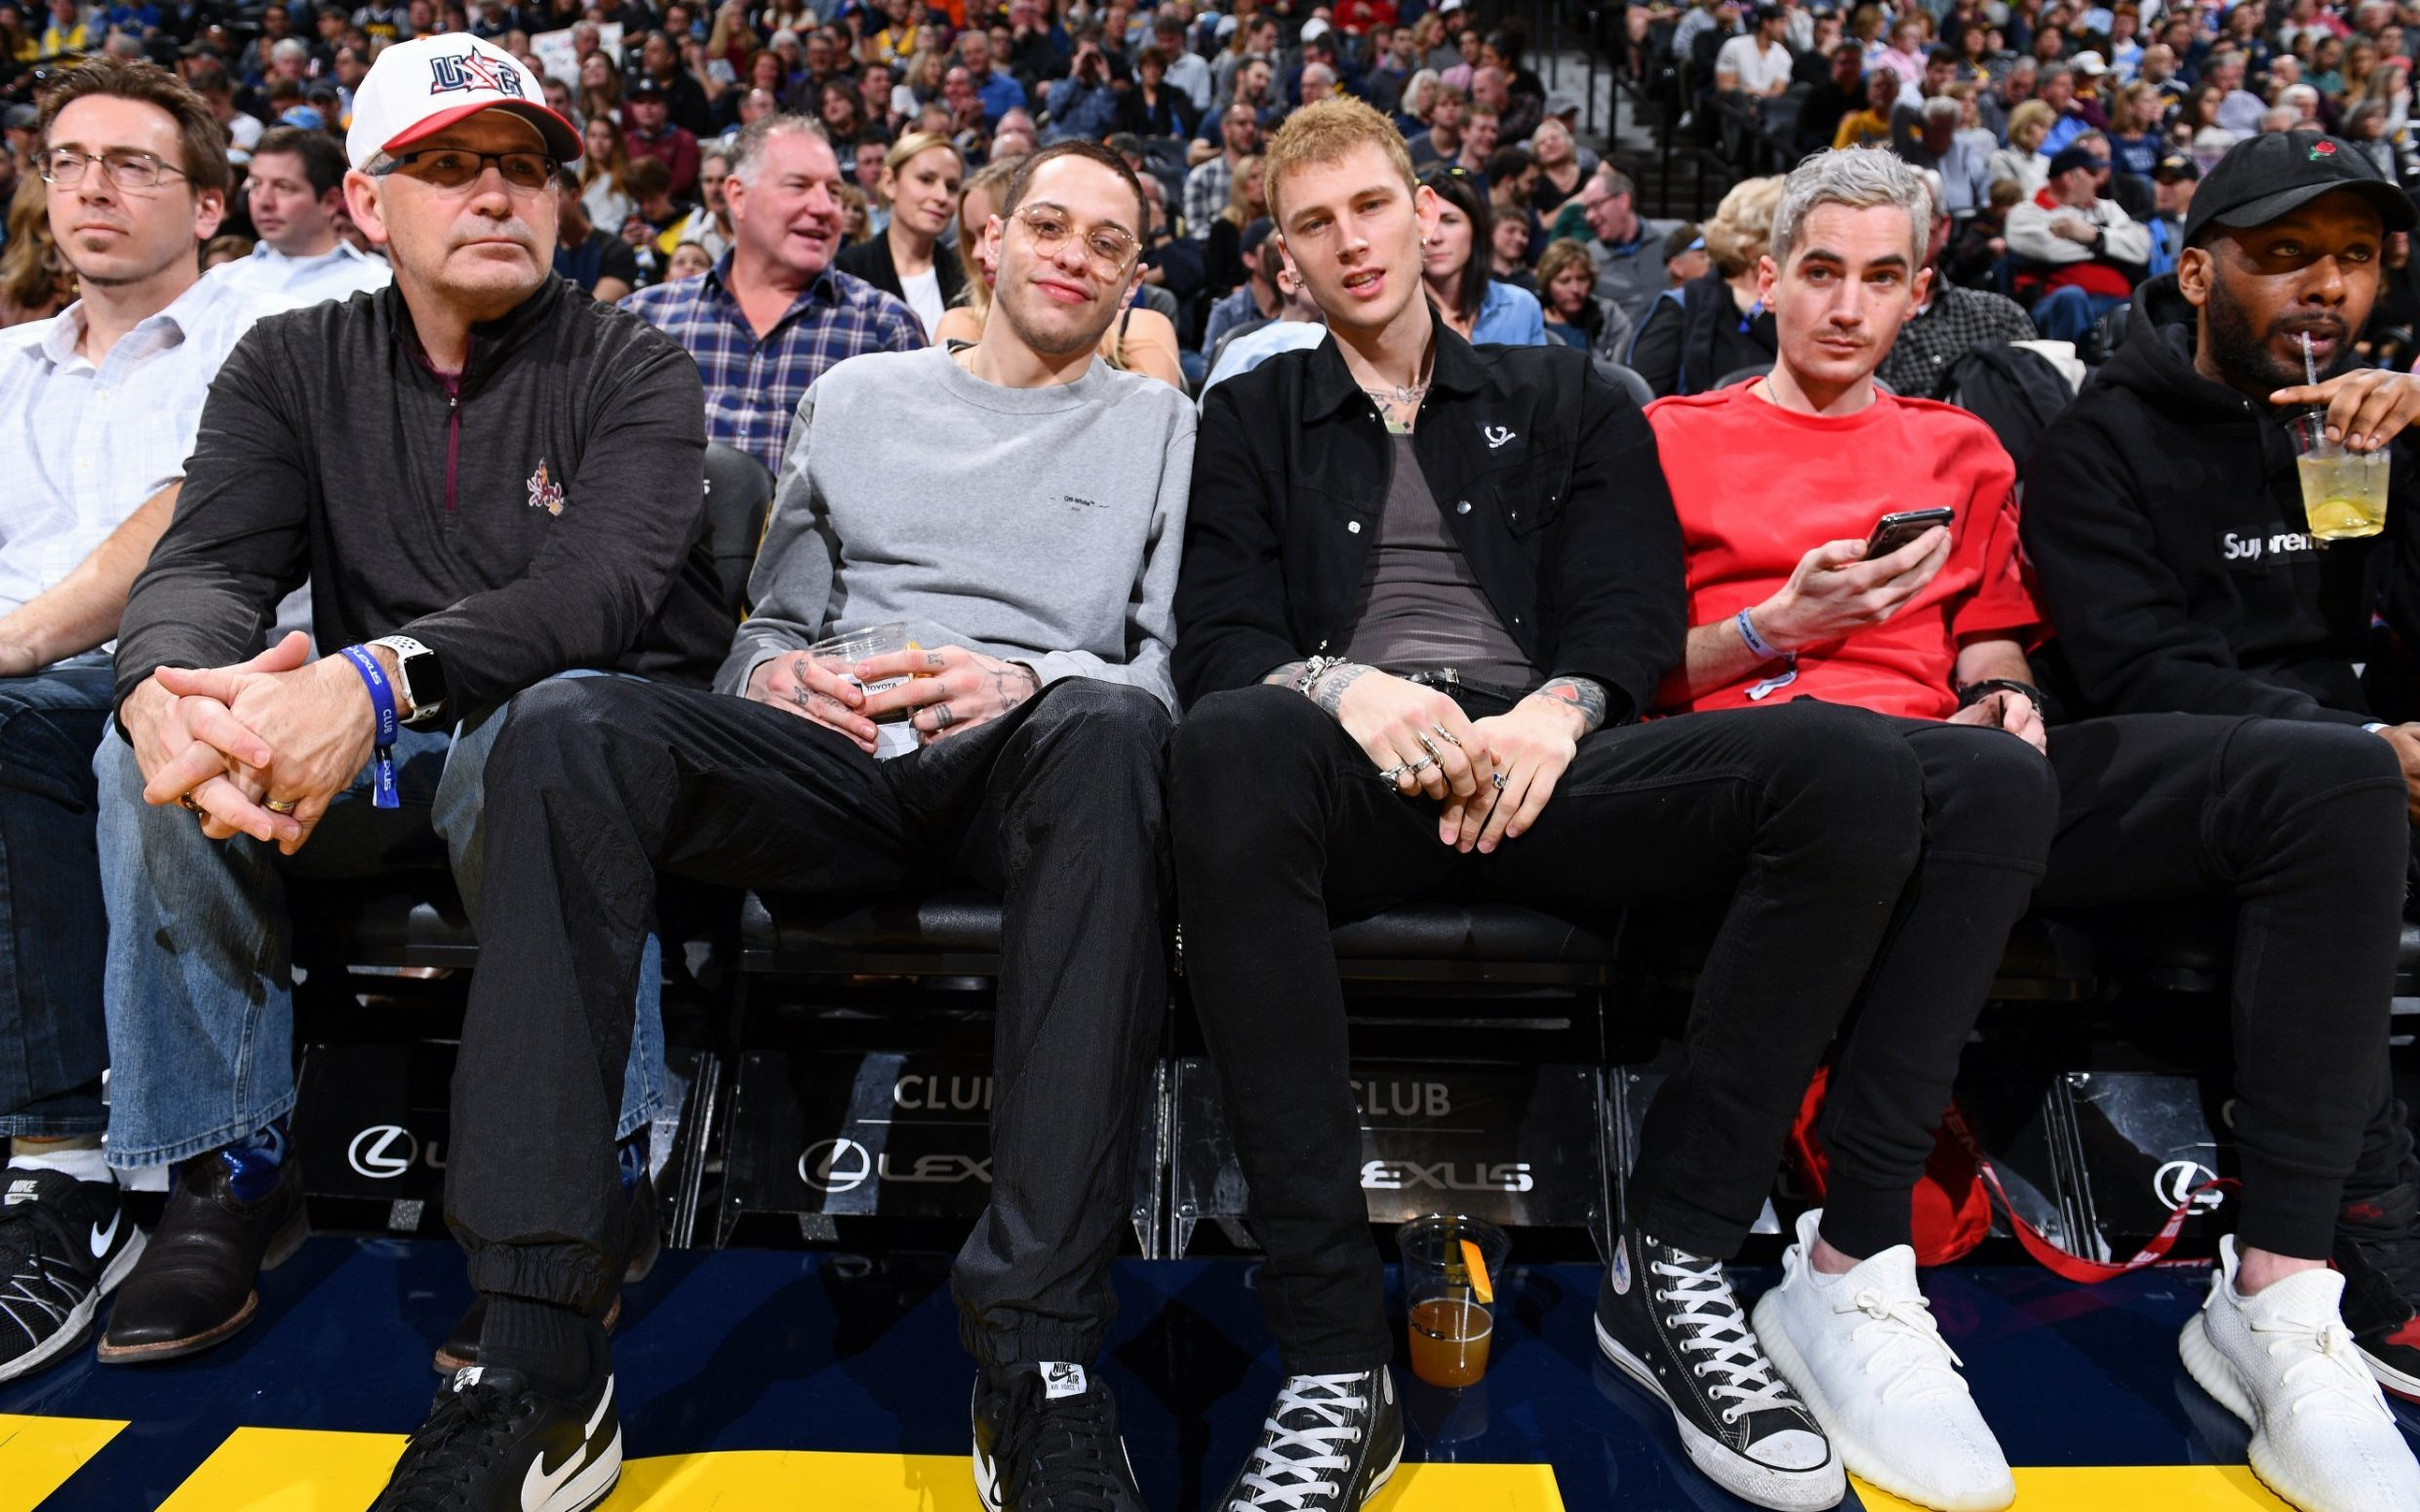 DENVER, CO - JANUARY 05: Comedian, Pete Davidson and Rapper, Machine Gun Kelly attend the Charlotte Hornets game against the Denver Nuggets on January 05, 2019 at the Pepsi Center in Denver, Colorado. NOTE TO USER: User expressly acknowledges and agrees that, by downloading and/or using this Photograph, user is consenting to the terms and conditions of the Getty Images License Agreement. Mandatory Copyright Notice: Copyright 2019 NBAE (Photo by Garrett Ellwood/NBAE via Getty Images)